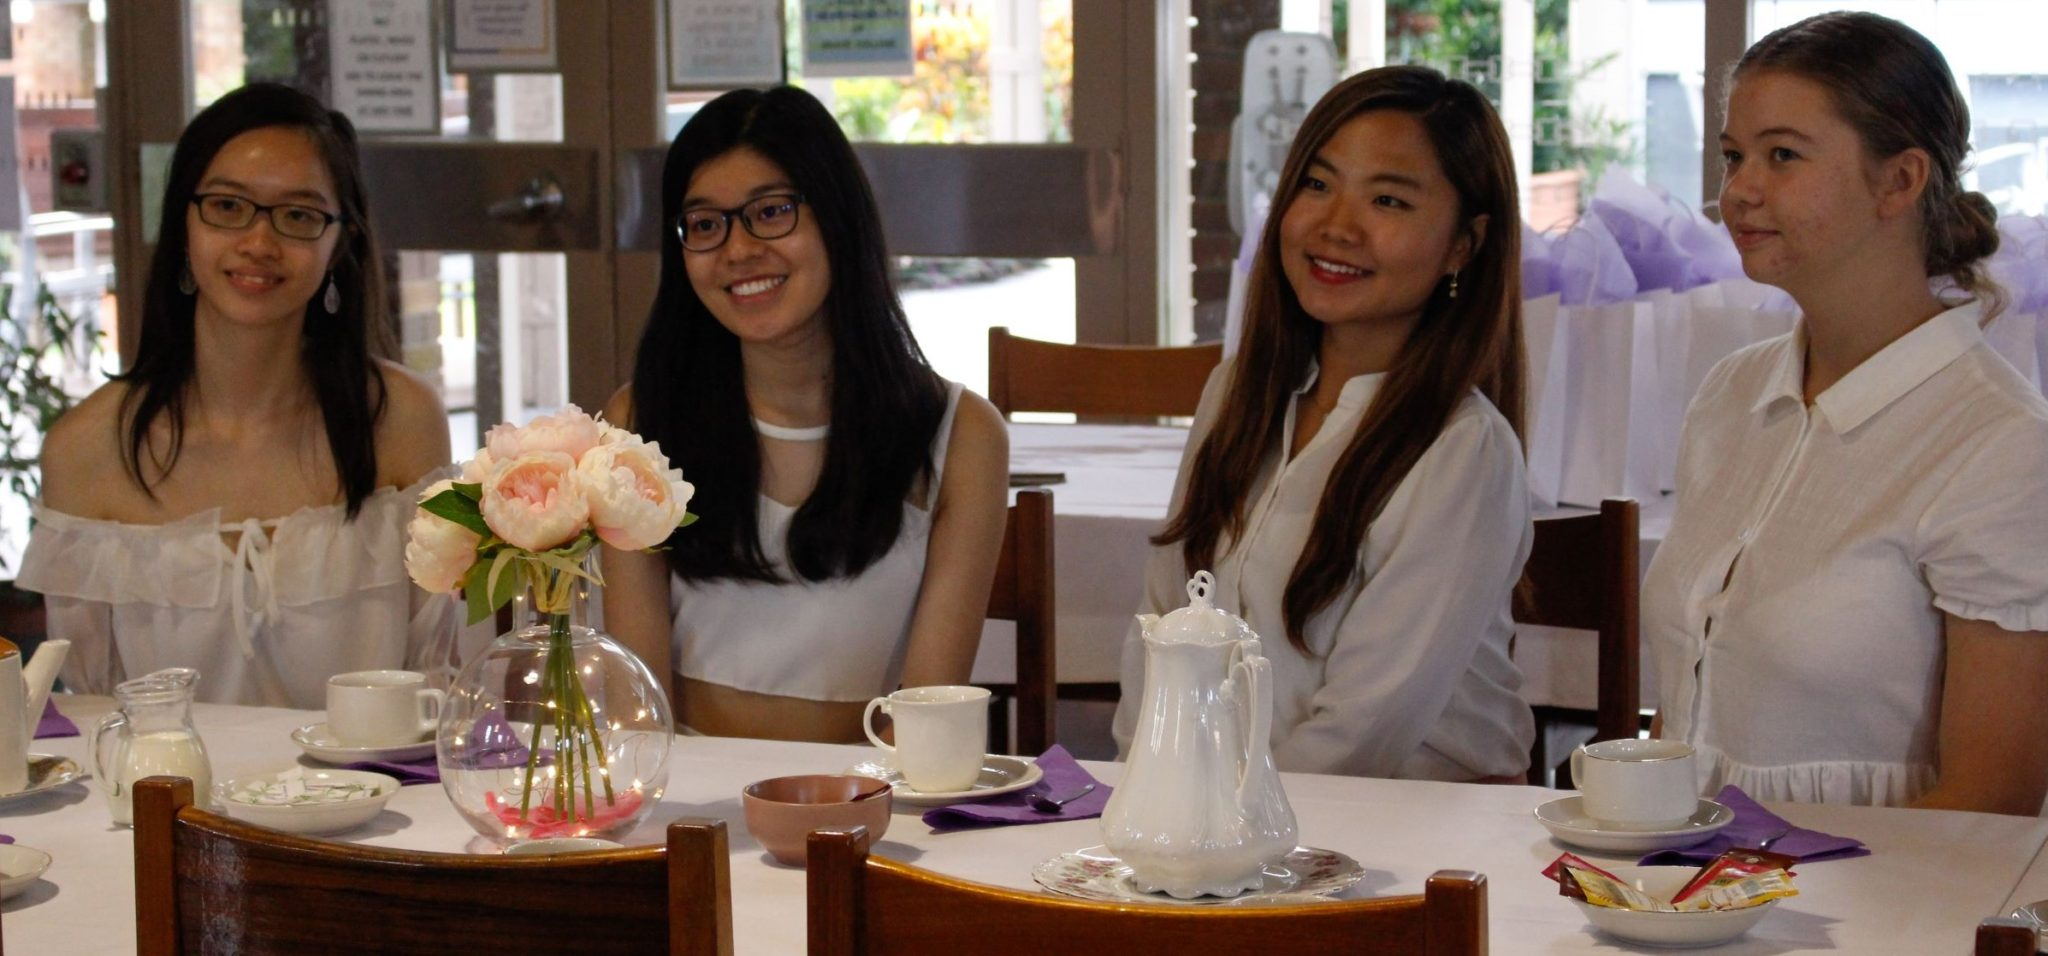 Grace College residents at Alumnae High Tea 2019